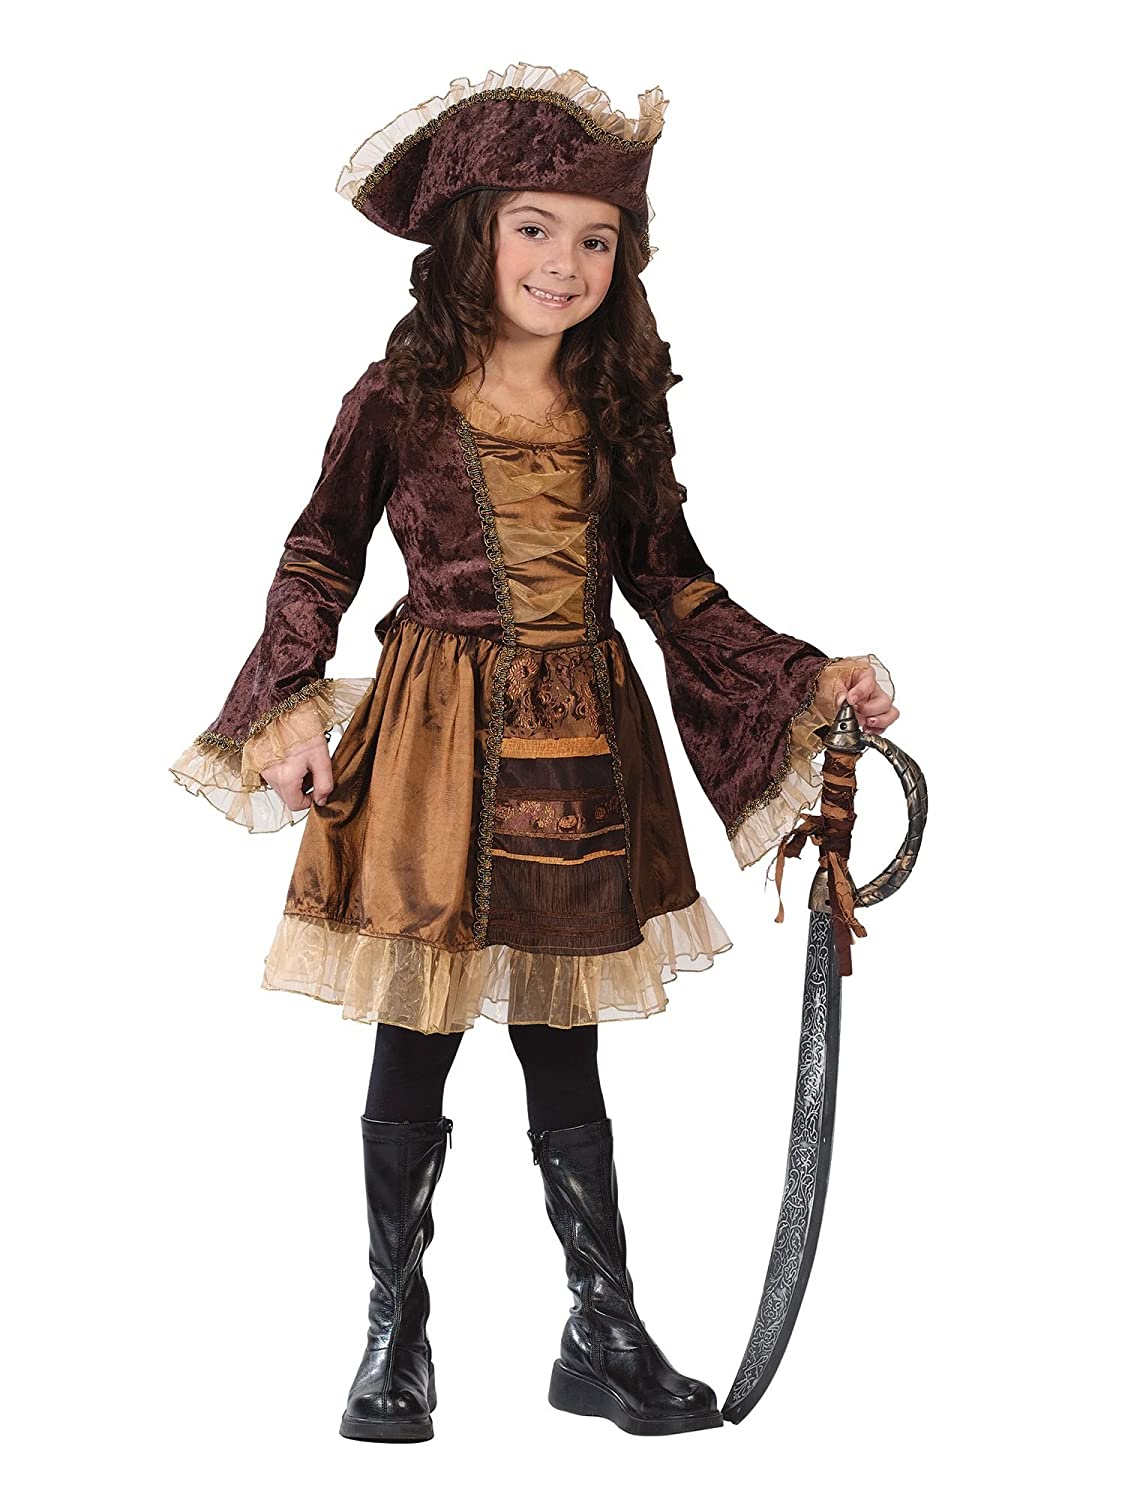 sc 1 st  Amazon.com & Amazon.com: Sassy Victorian Pirate Child Costume - Large: Clothing